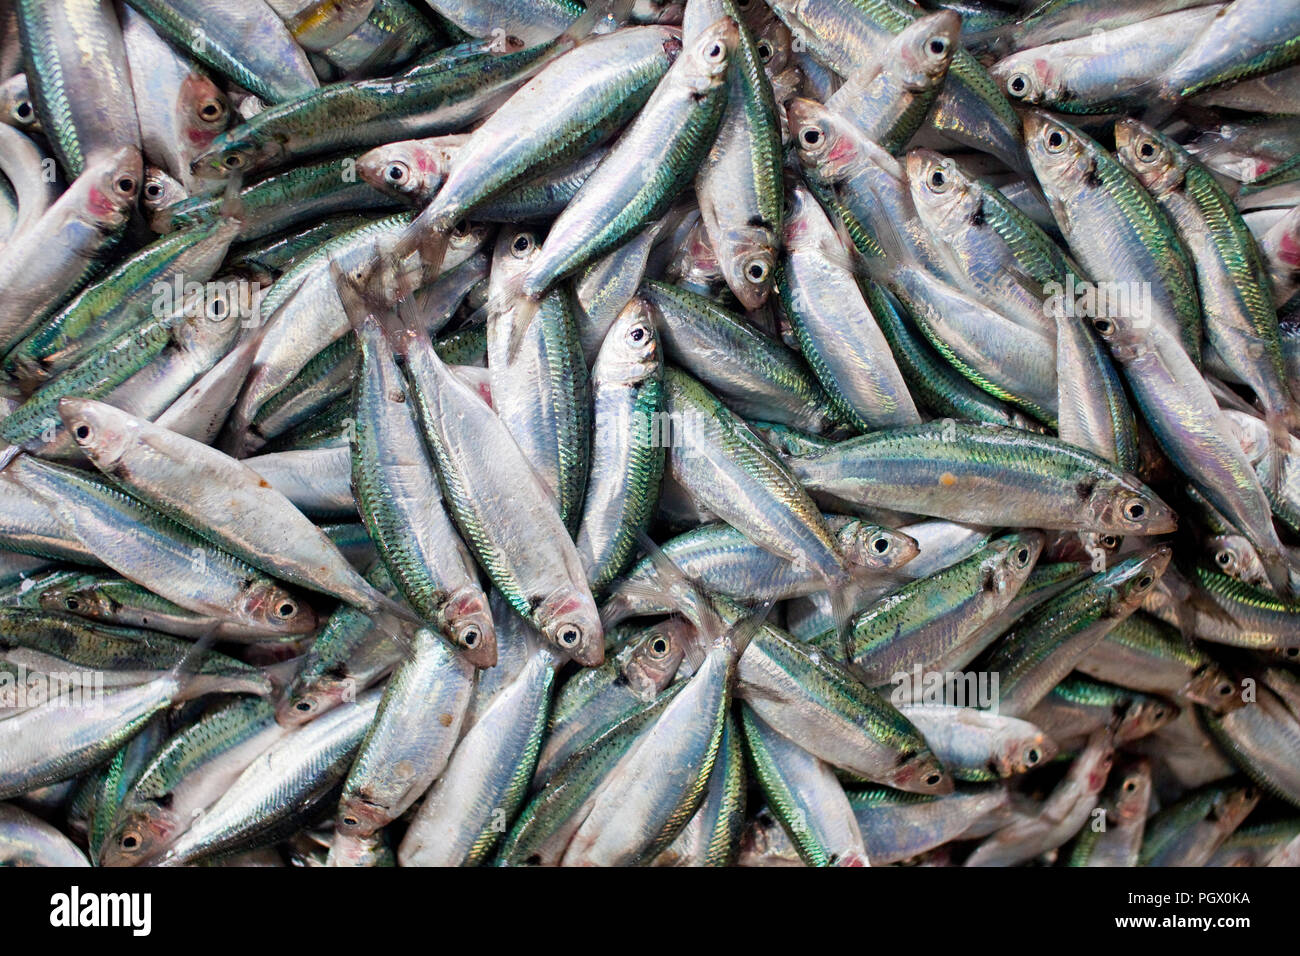 Fresh fish at a market in Indonesia's Belitung Island. - Stock Image